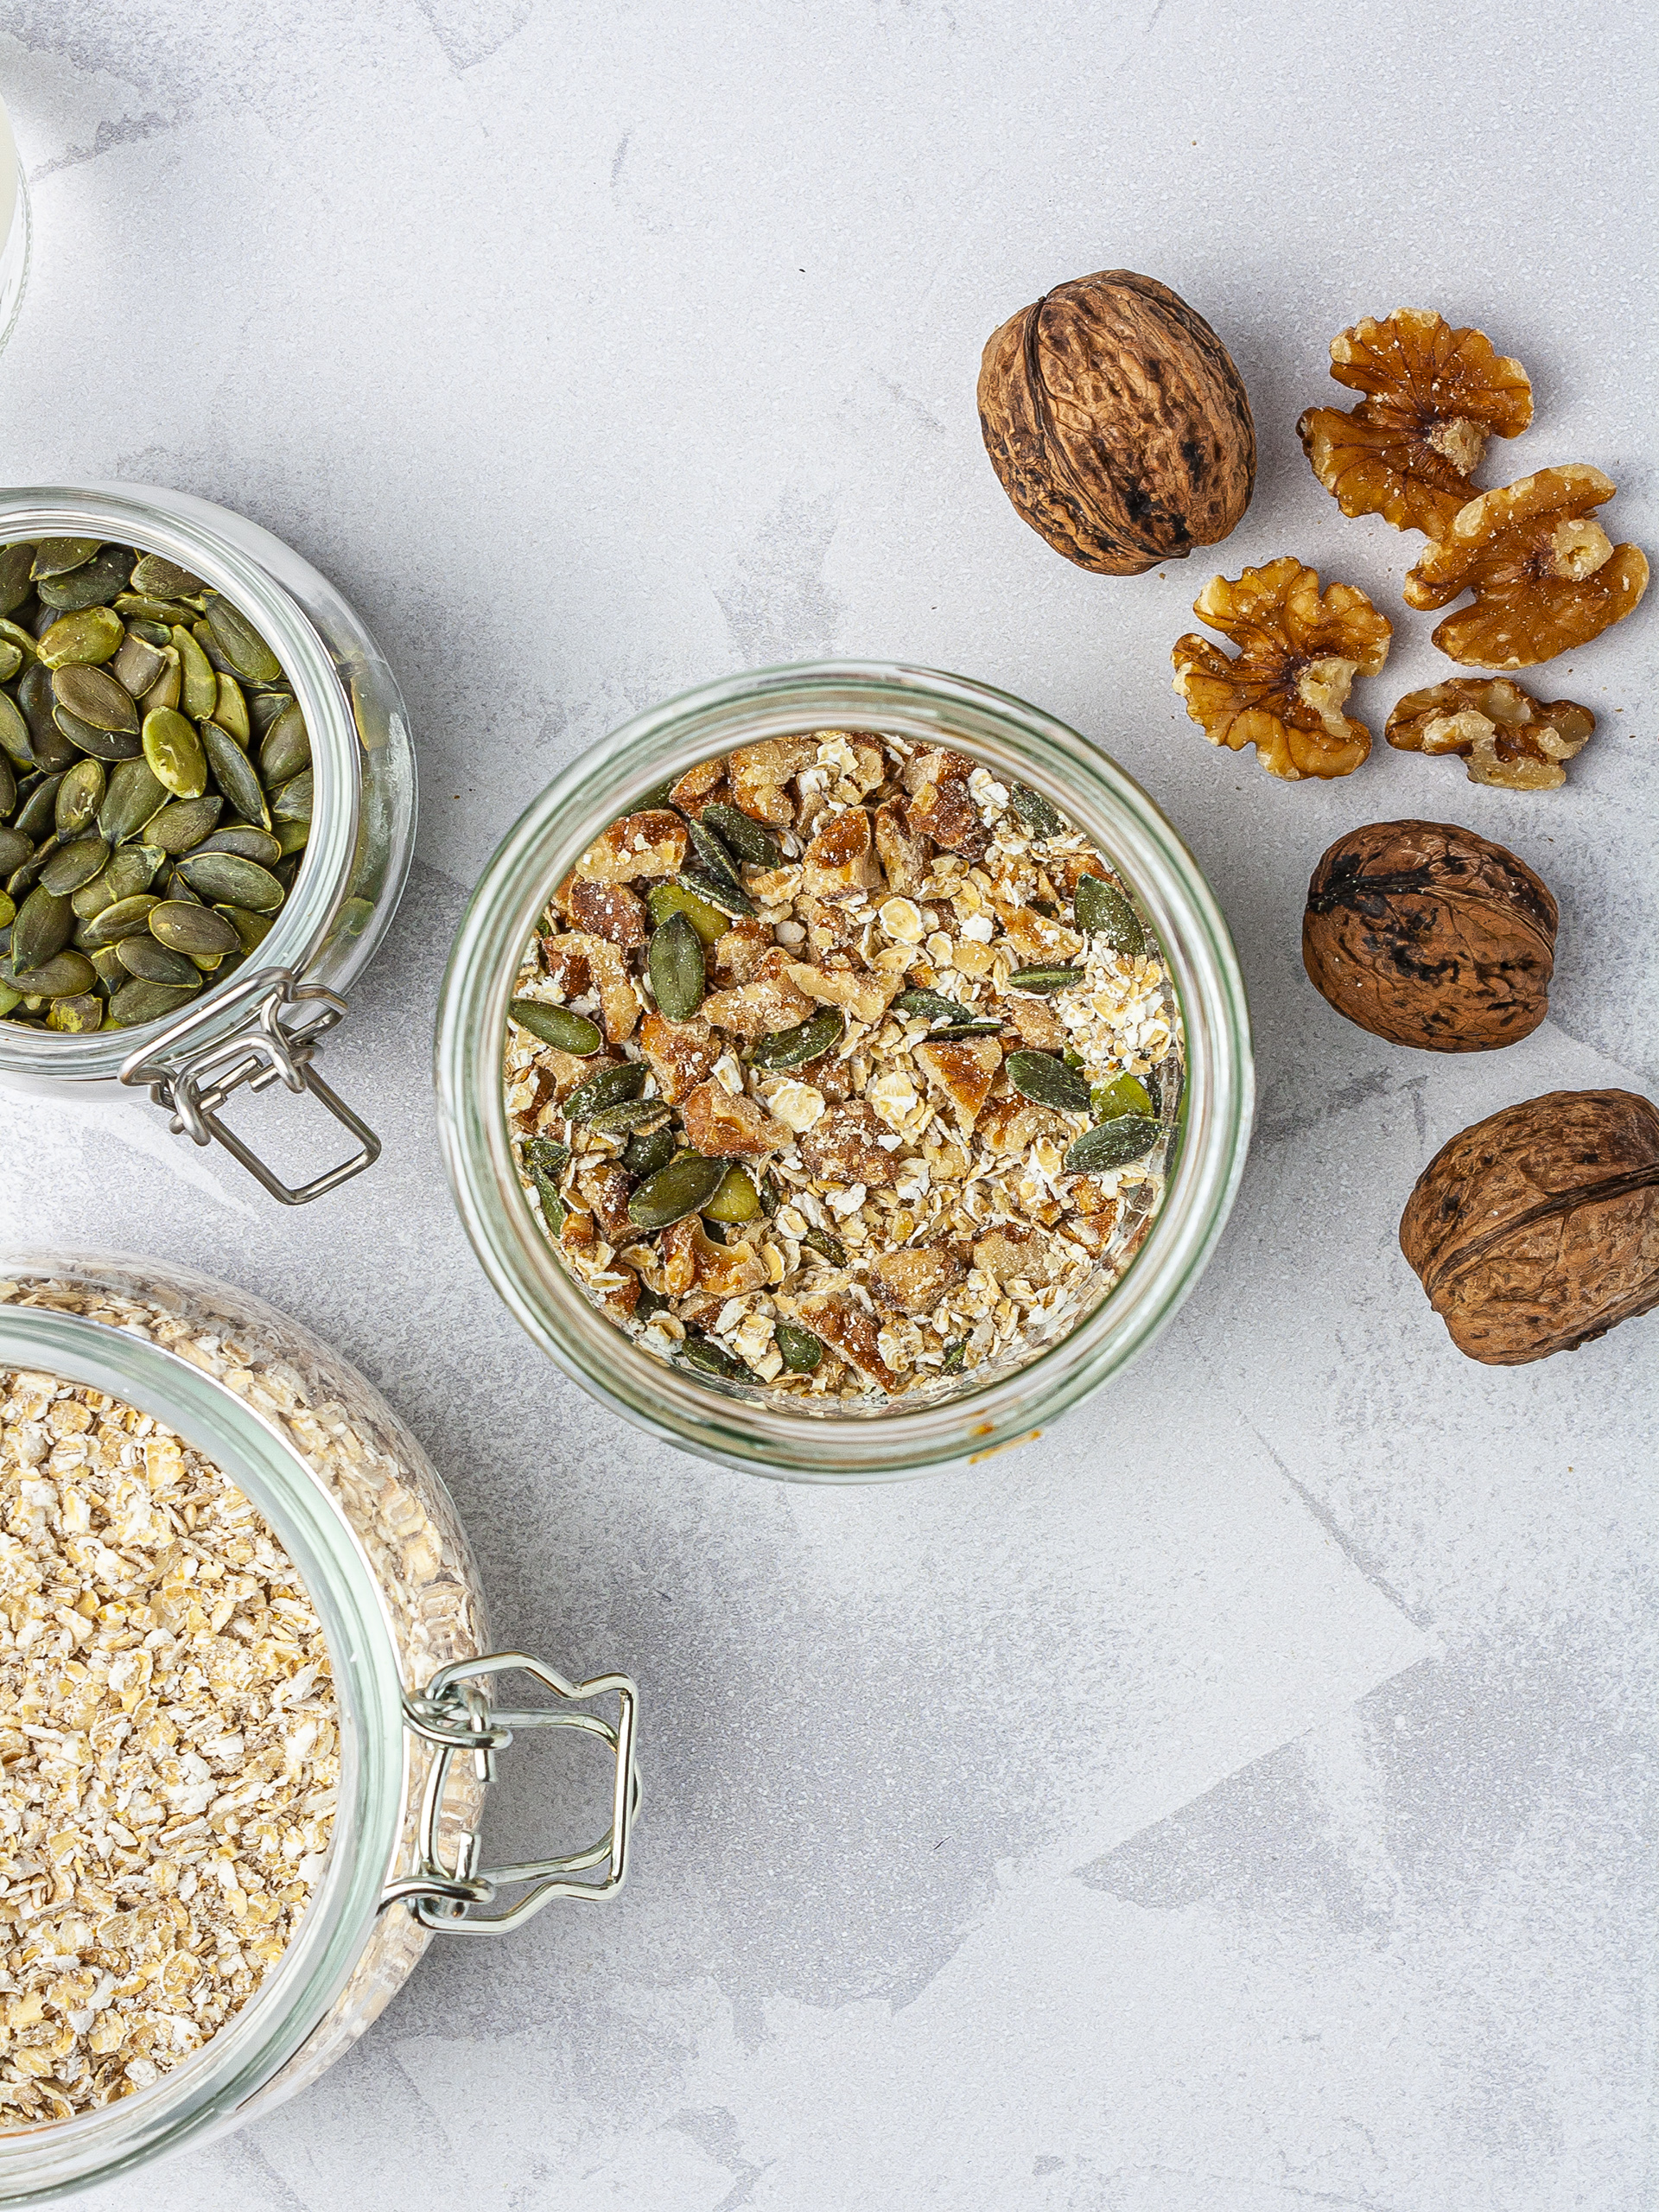 Granola layer in the smoothie jar with oats, walnut pieces, and pumpkin seeds.